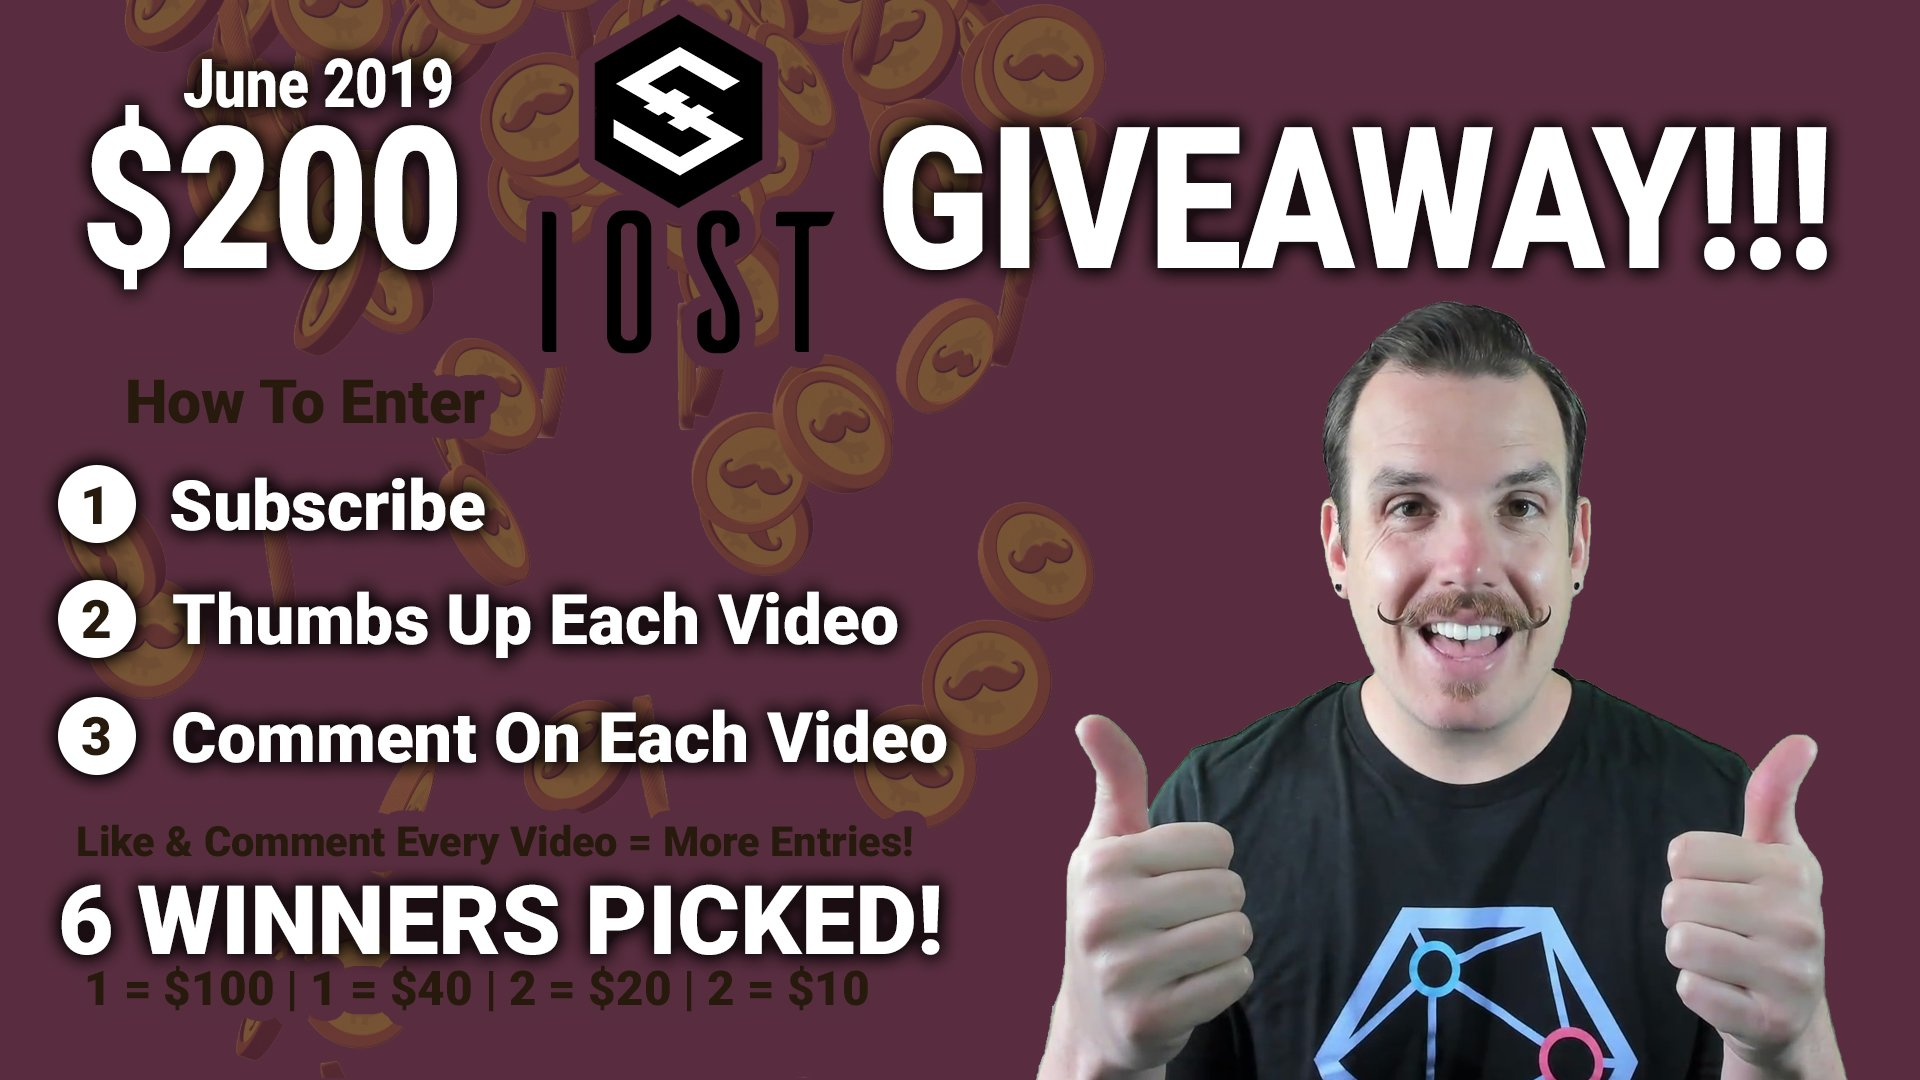 IOST giveaway